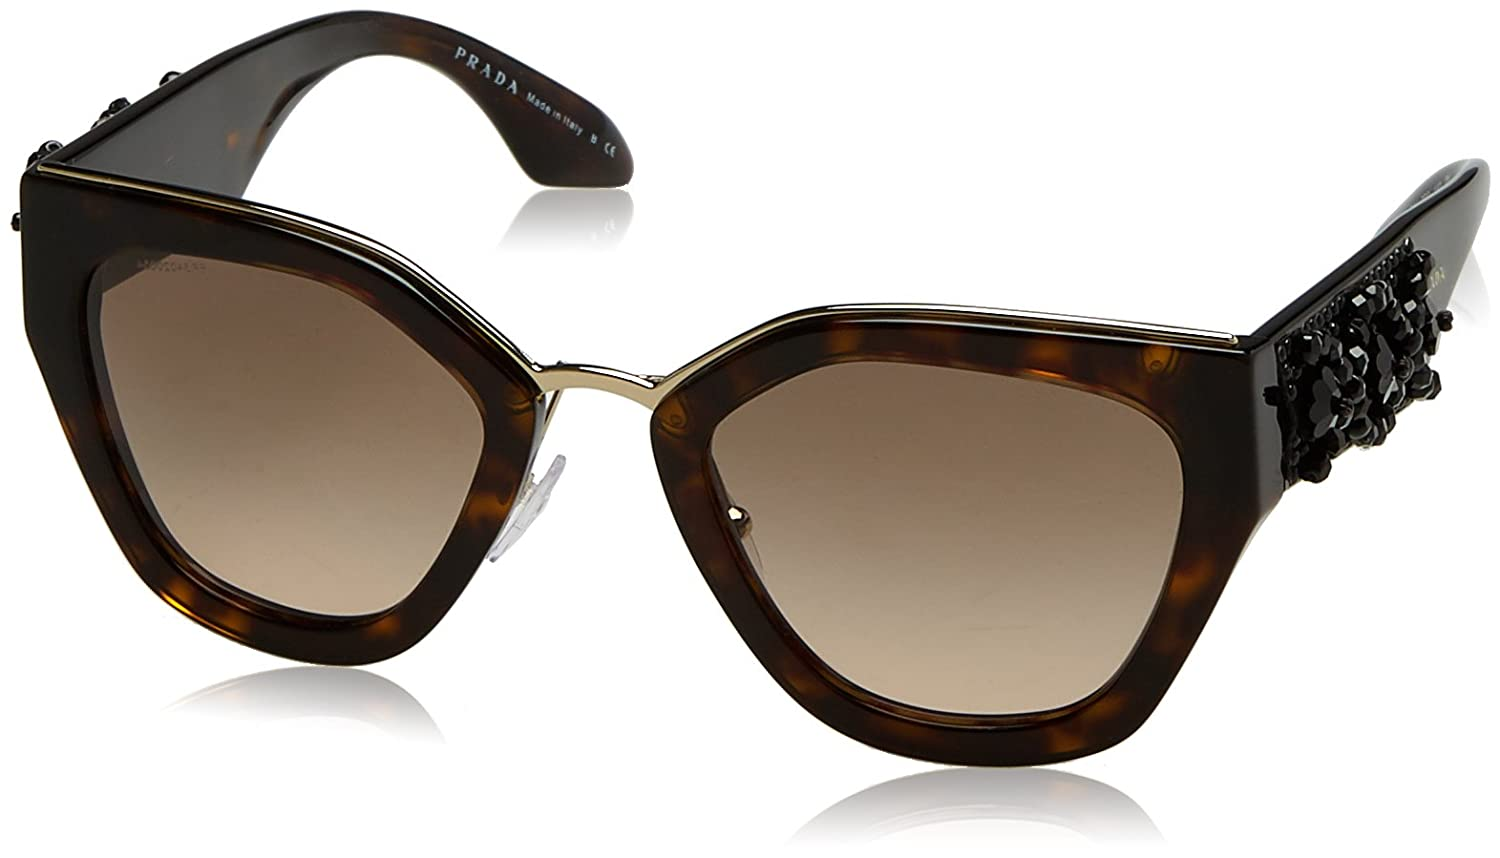 73ba303f9183 Prada Women s PR 10TS Sunglasses Havana   Brown Gradient 52mm at Amazon  Men s Clothing store